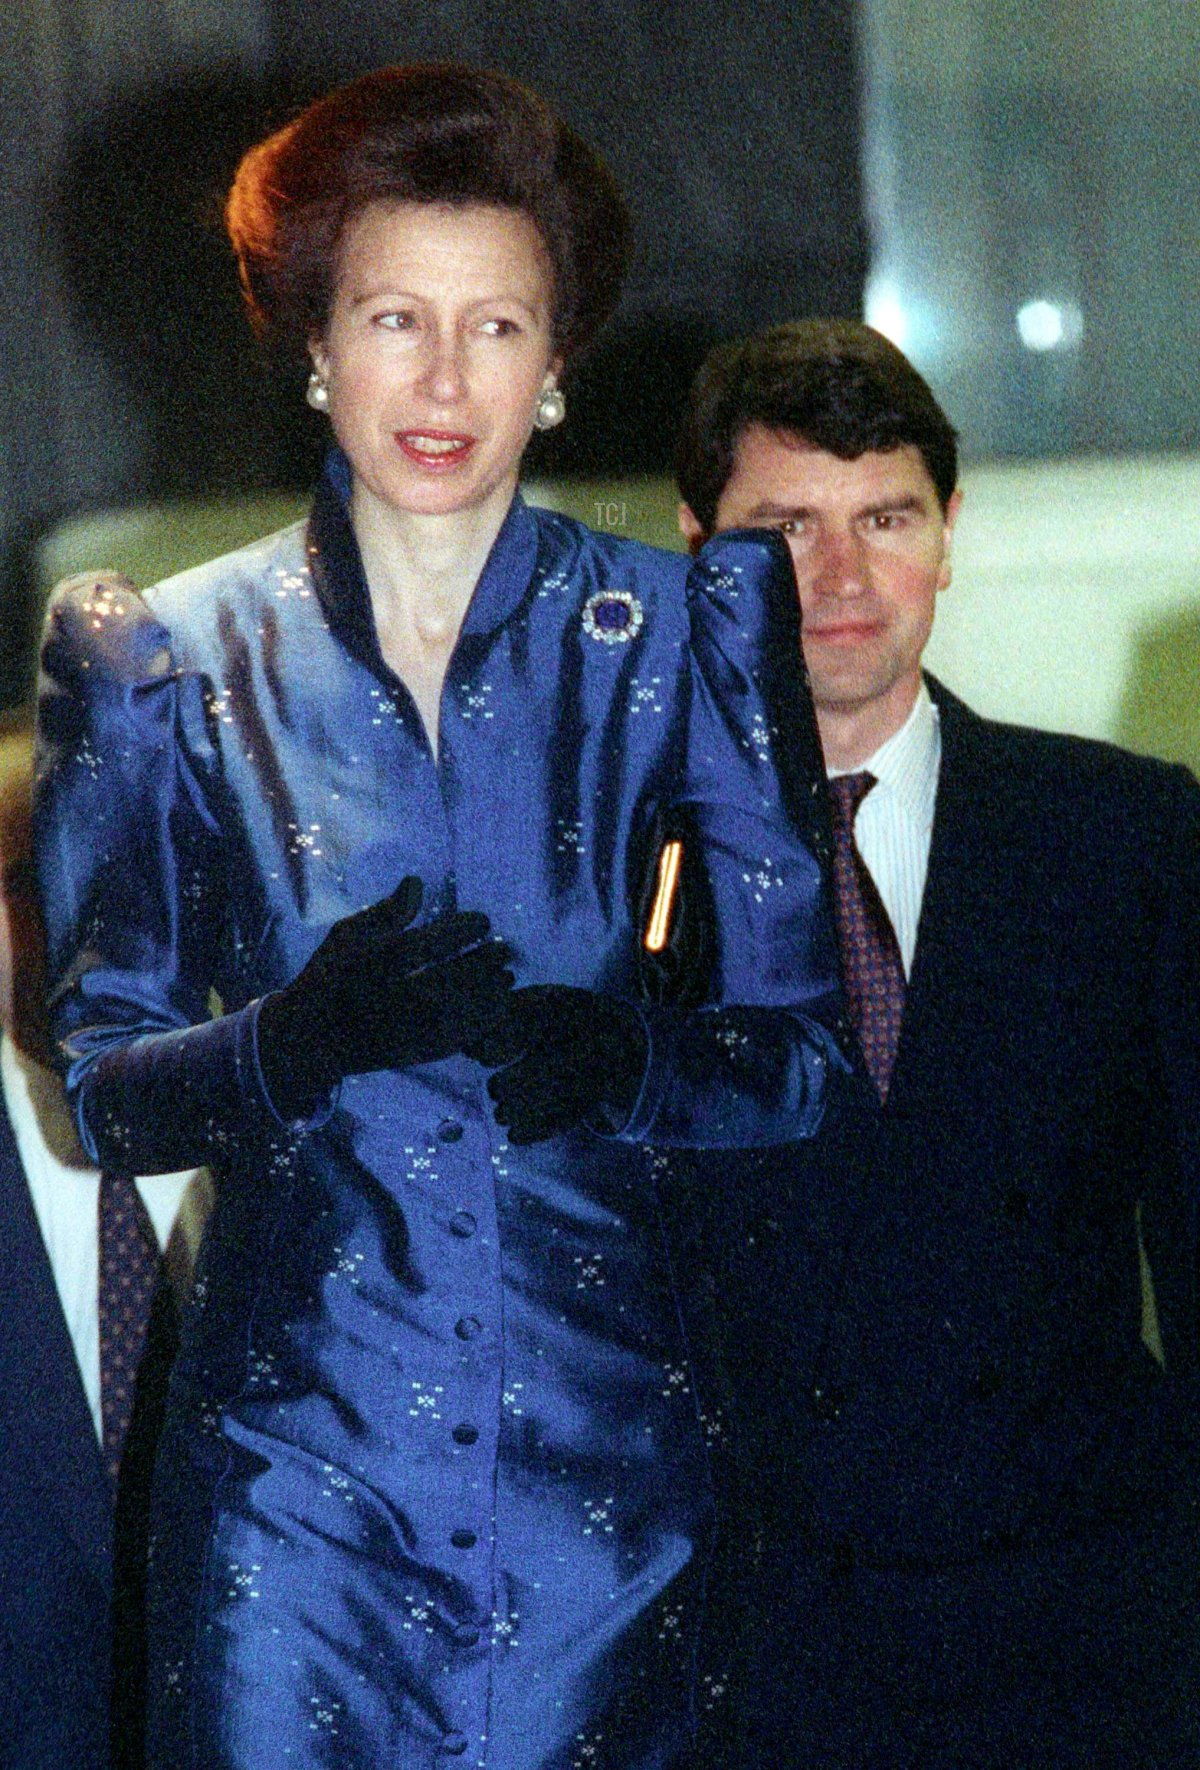 Royal newlyweds, Princess Anne and her husband Commander Tim Laurence, arrive for the charity premiere of New Zealand-made movie 'The End of the Golden Weather' in London, February 4, 1993